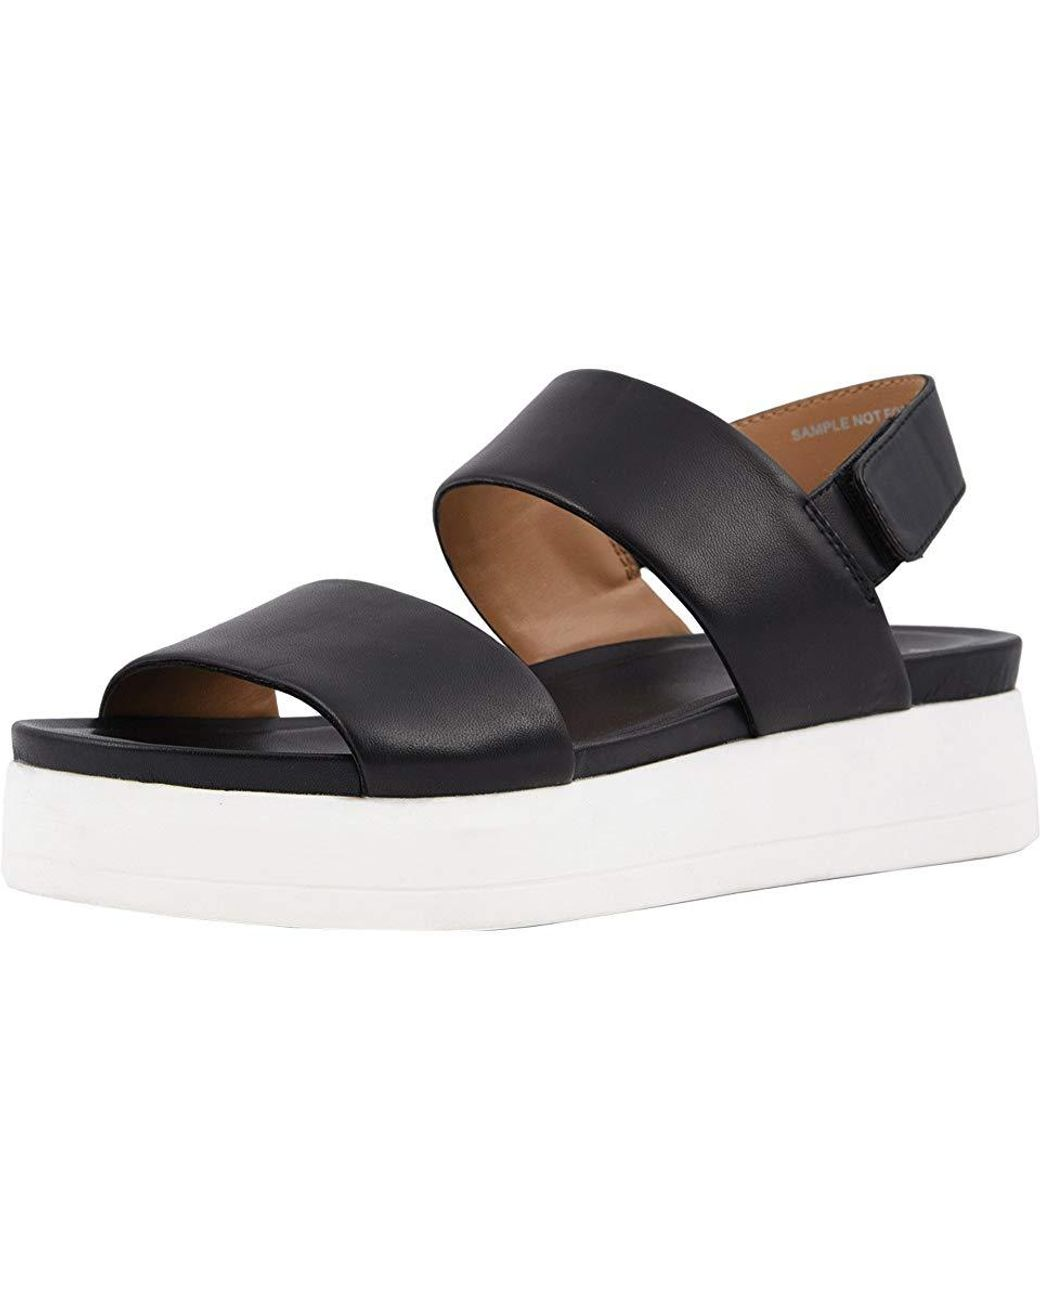 0968a9f9f82 Women's Kenan (black) Shoes